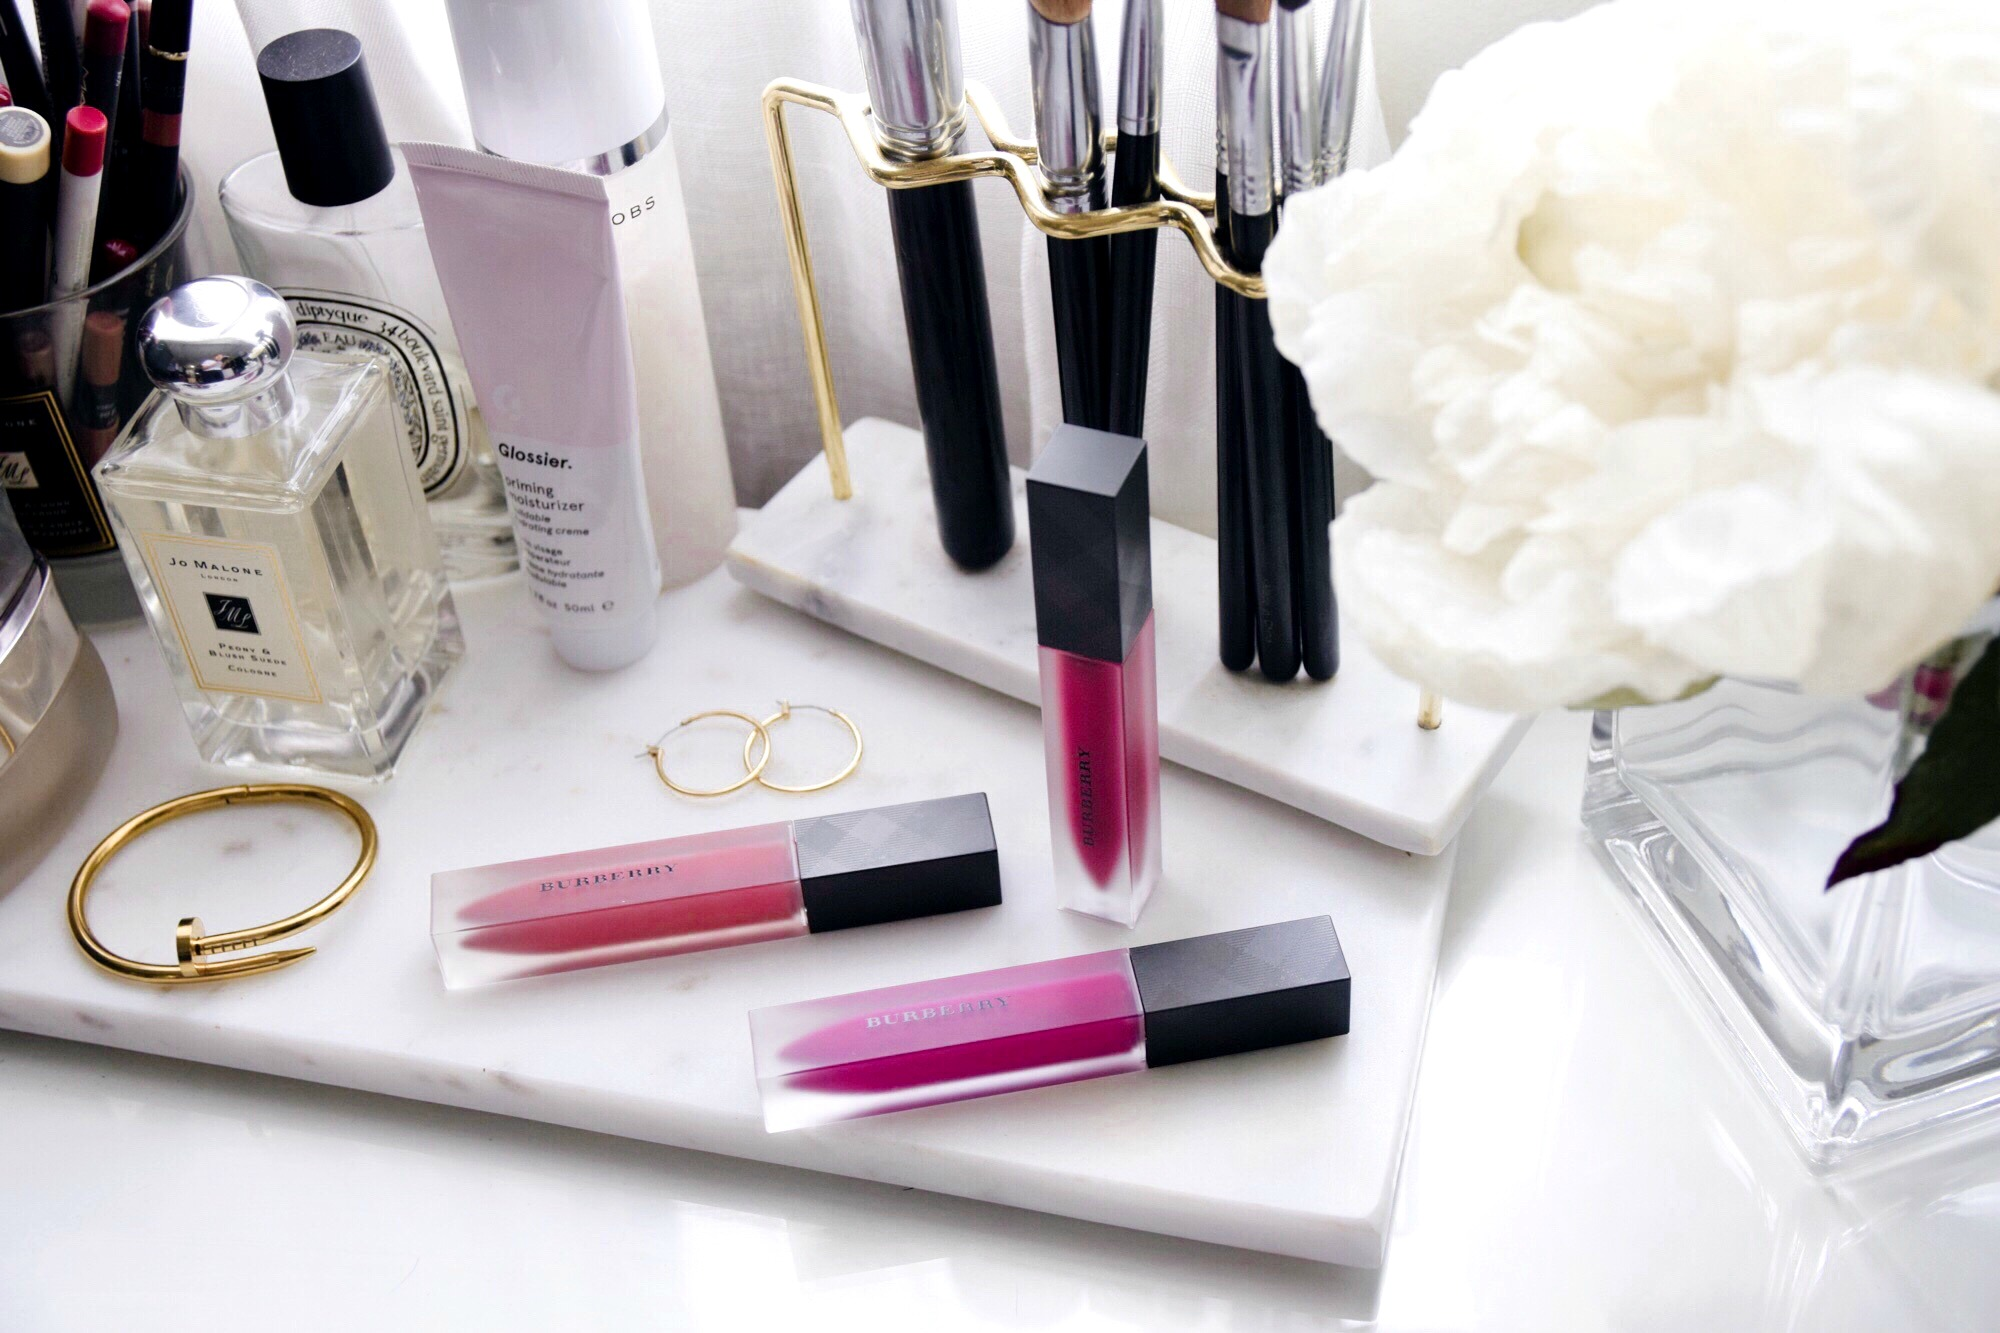 On My Vanity | Burberry Liquid Lip Velvet // Beauty Products Favorites // Makeup Reviews // Burberry Colors Fawn, Oxblood & Plum // Los Angeles Fashion Blogger Daphne Blunt: To Style, With Love